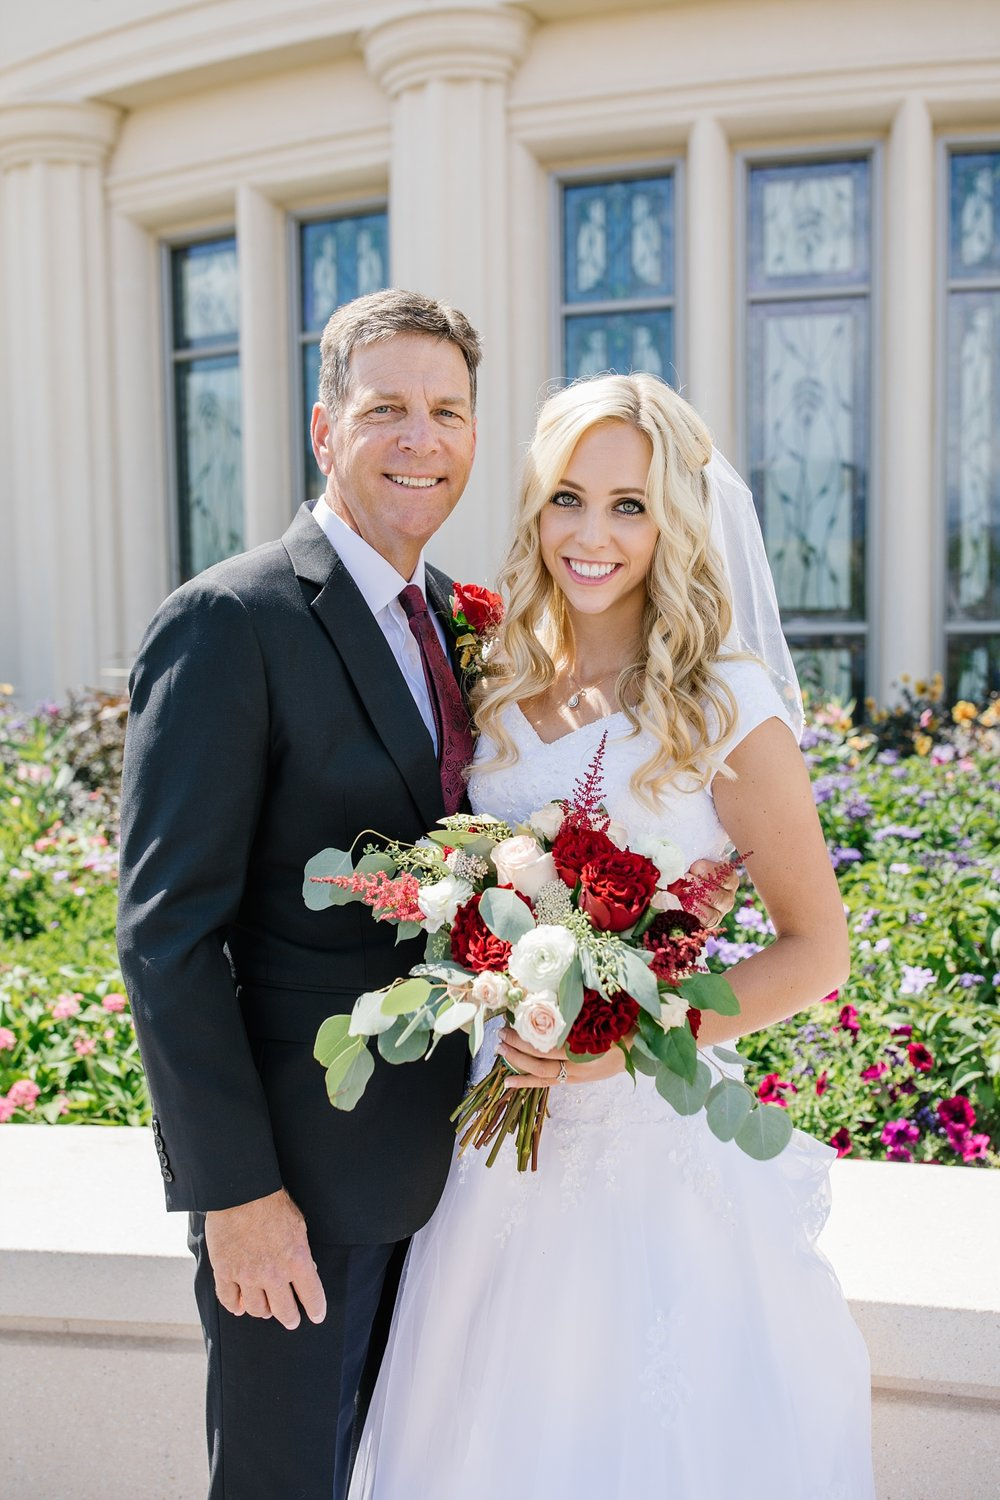 HannahChaseWedding-58_Lizzie-B-Imagery-Utah-Wedding-Photographer-Bridal-Photography-Payson-Utah-Temple-Clarion-Gardens-Catering-and-Events-Center.jpg